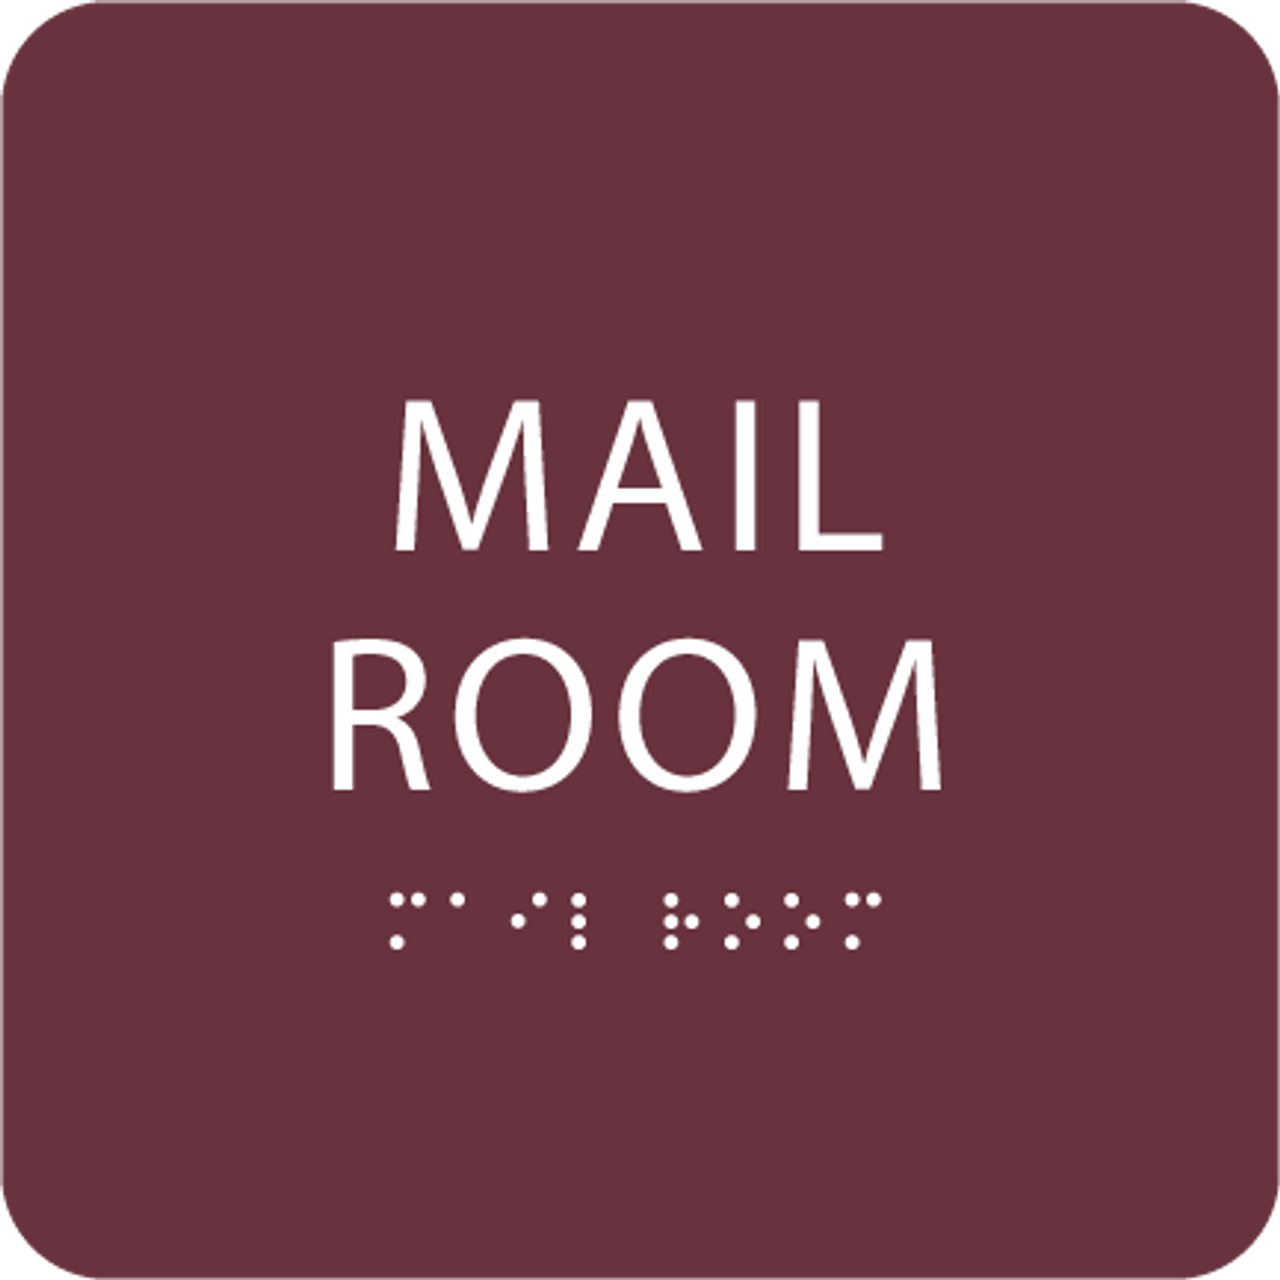 Burgundy Mail Room ADA Sign